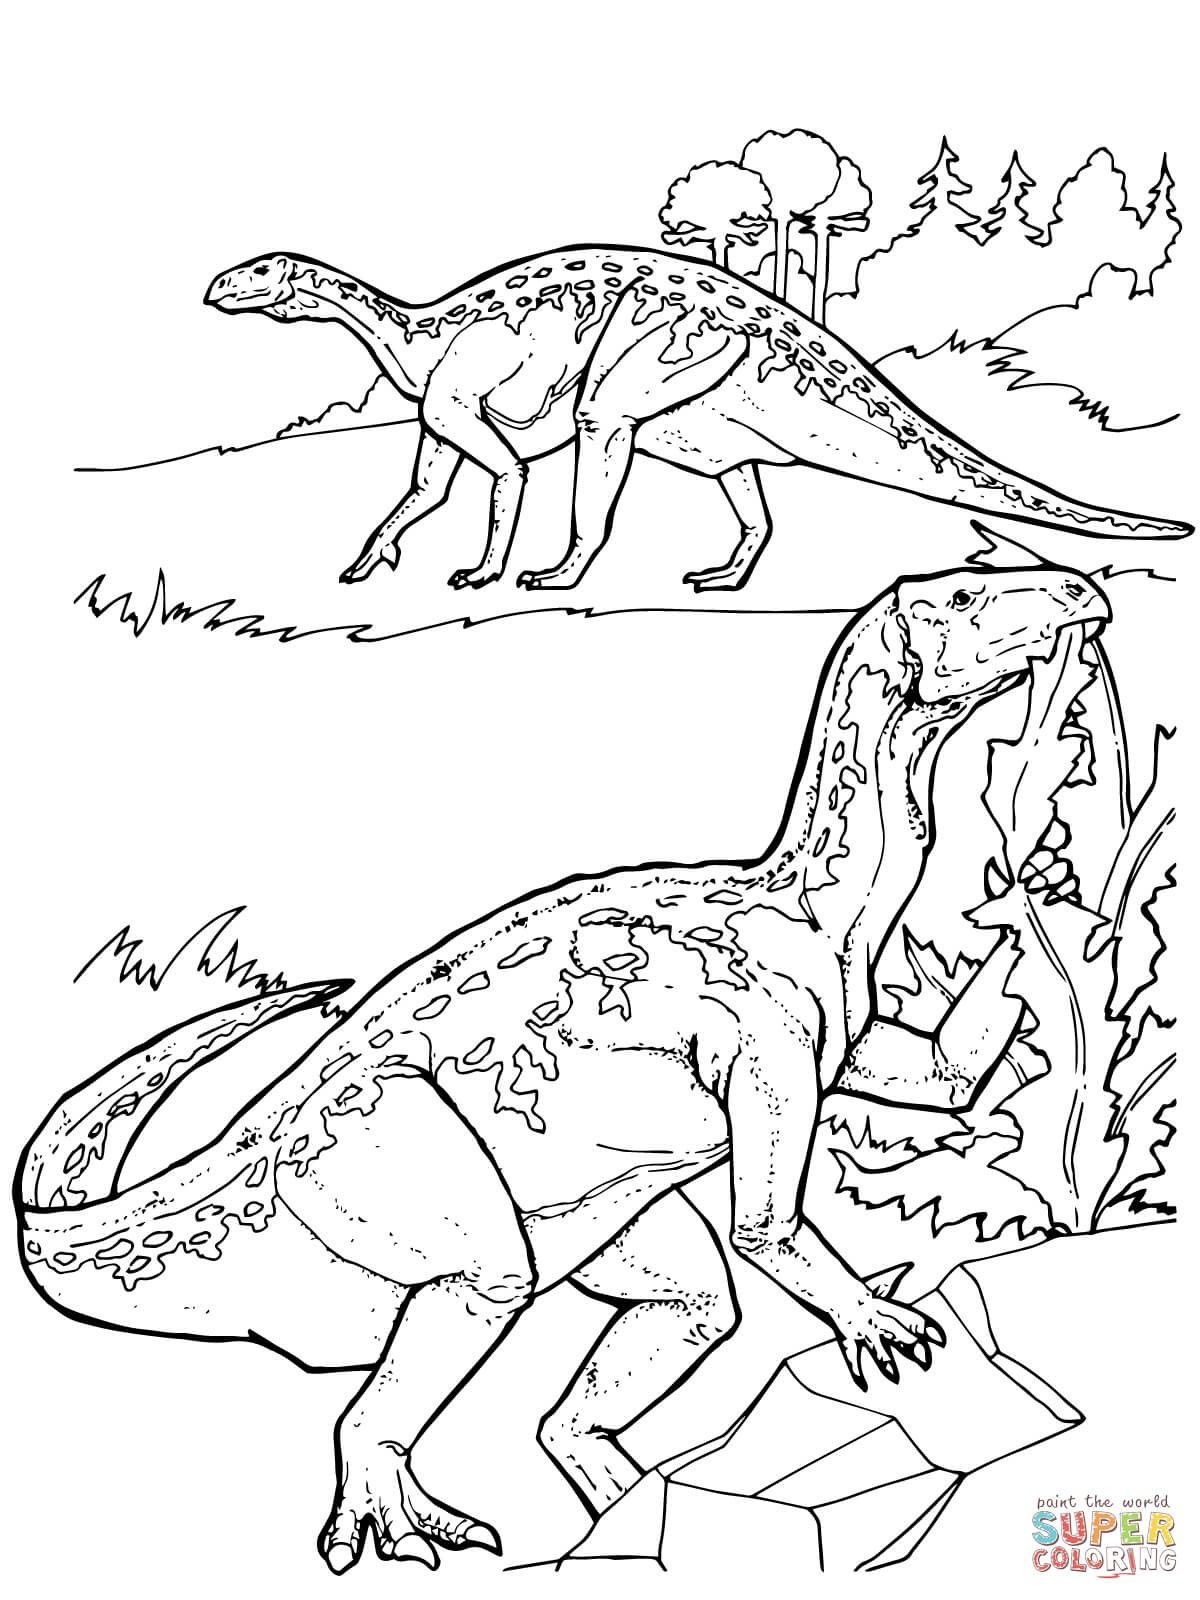 Triassic Dinosaurs Coloring Pages With Images